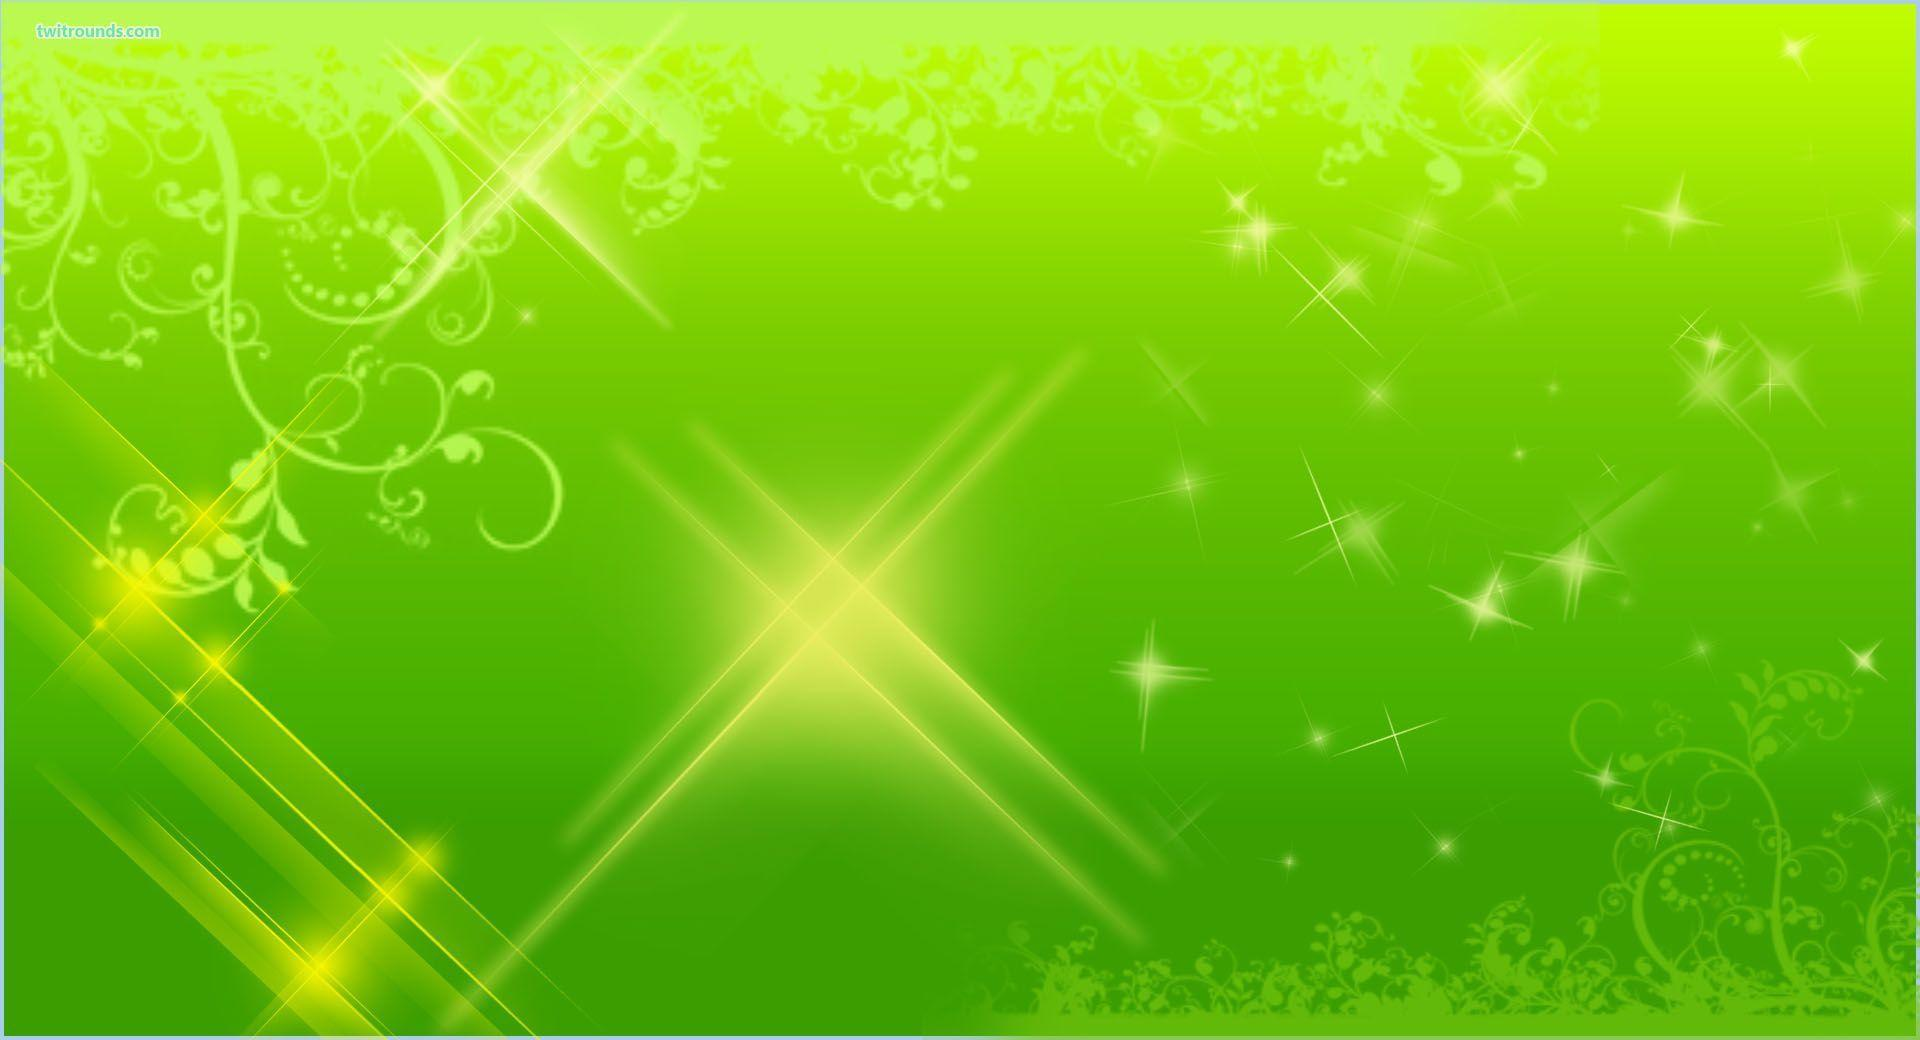 Cool Green Backgrounds Designs